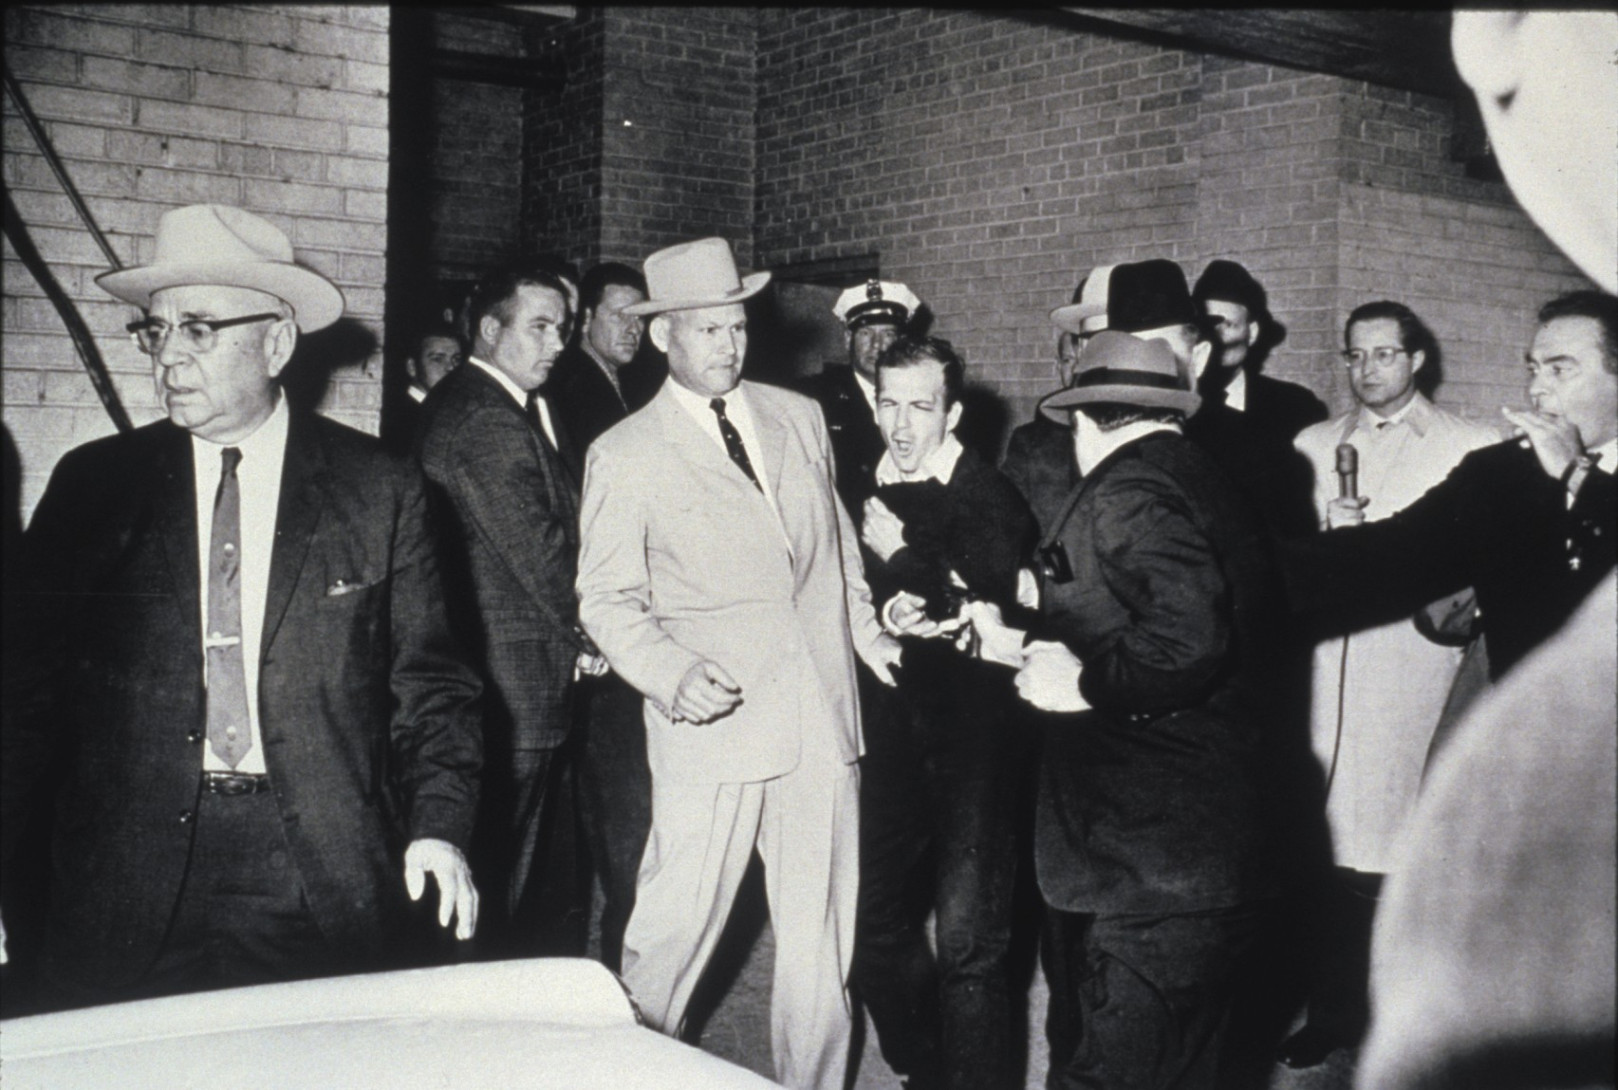 Robert H. Jackson for his photograph 'Murder of Lee Oswald by Jack Ruby'